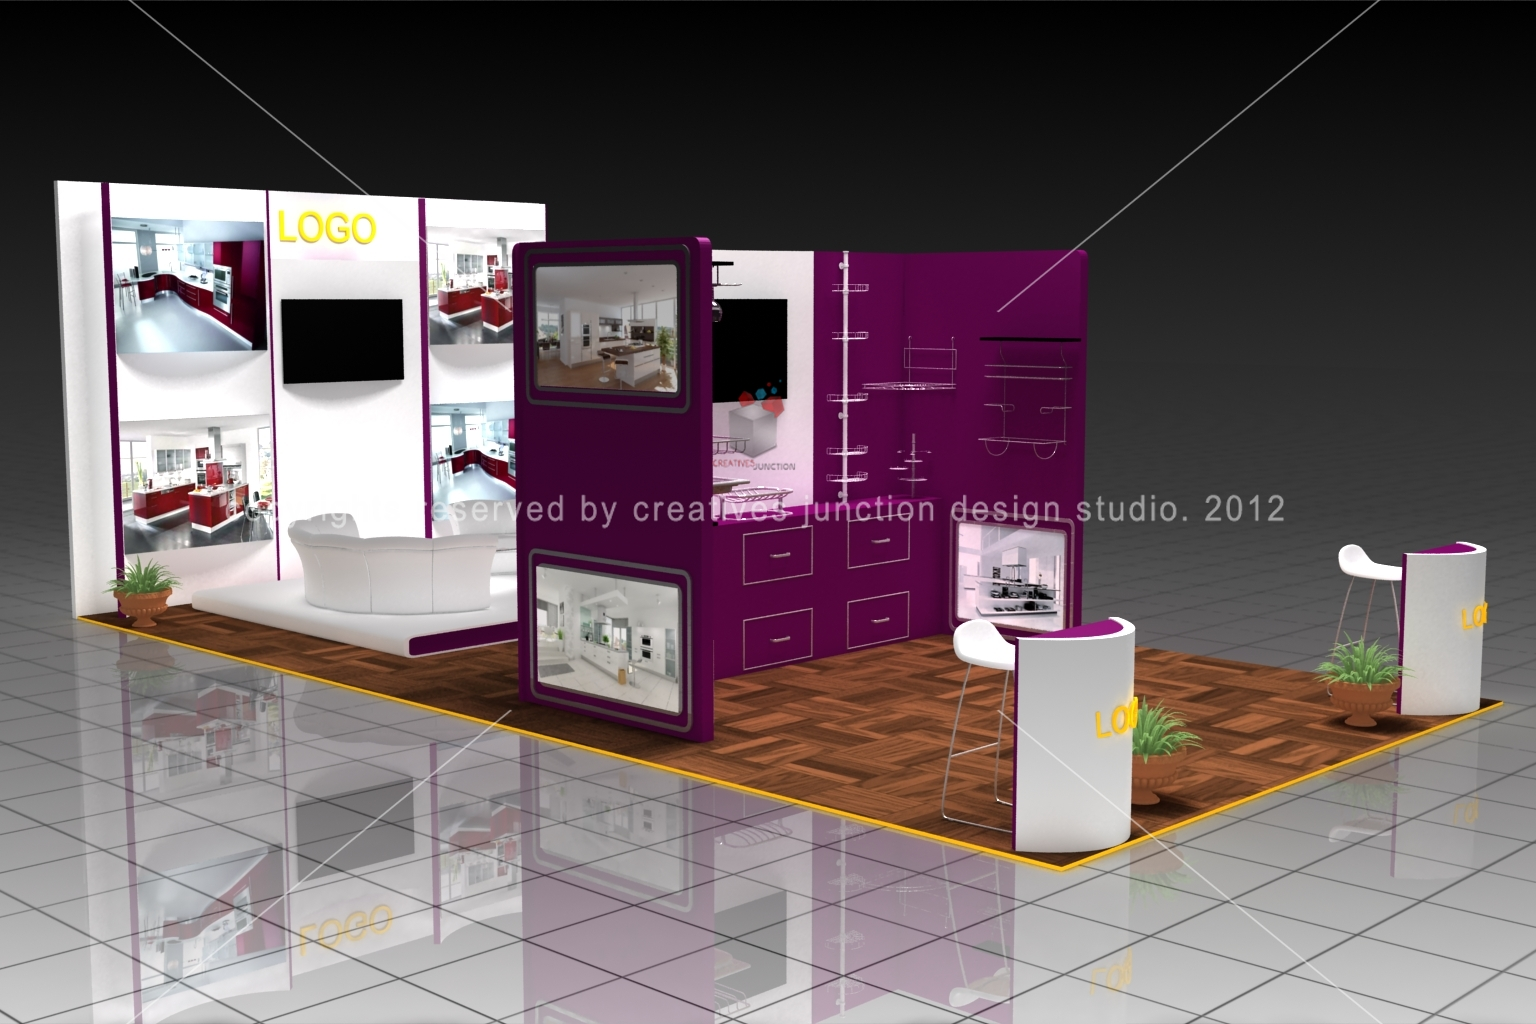 Creatives junction design studio home decor exhibition stand for Aita studio home decoration